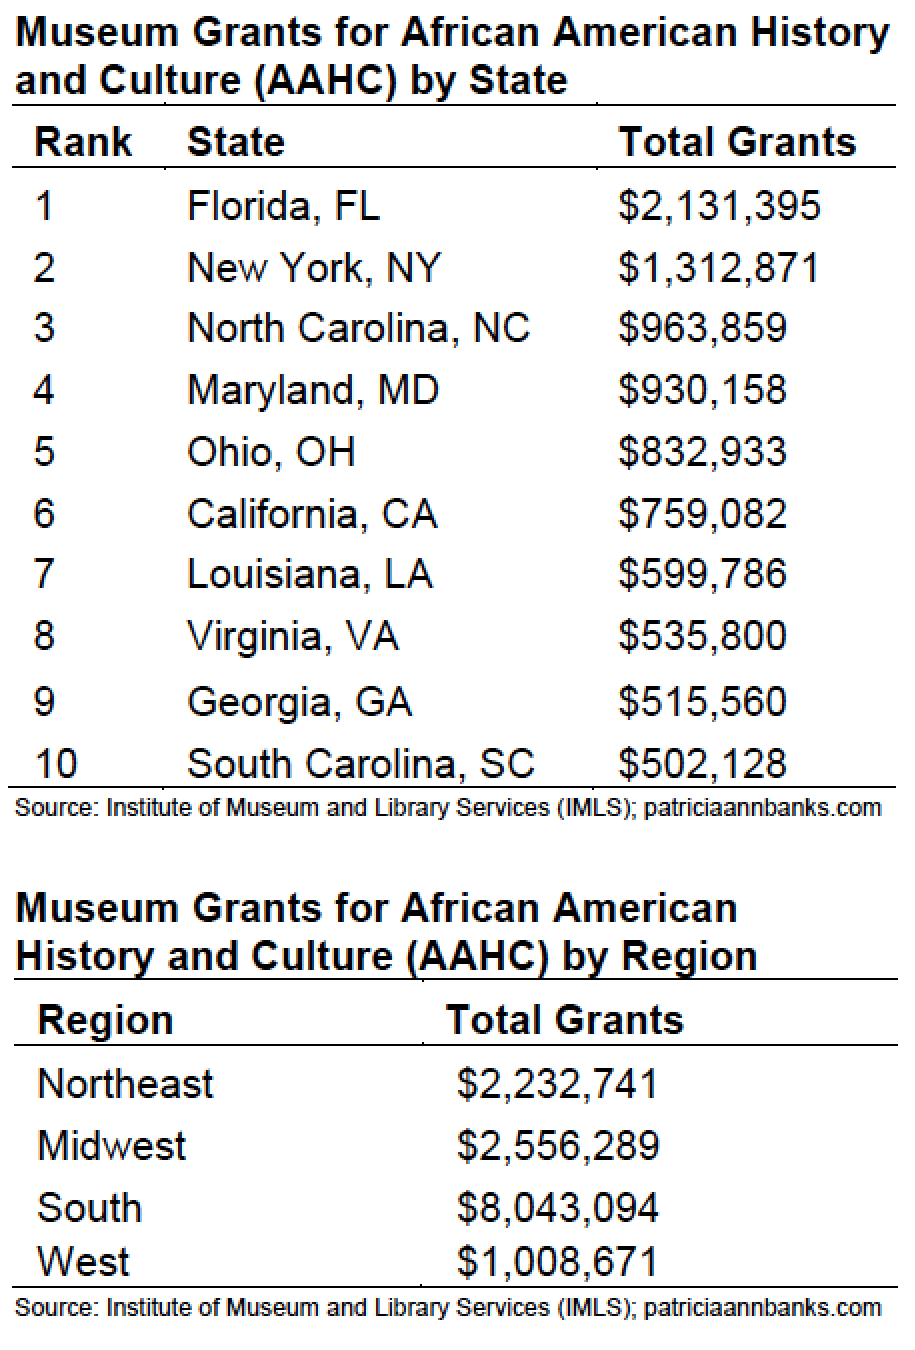 African American History and Culture Grants, IMLS